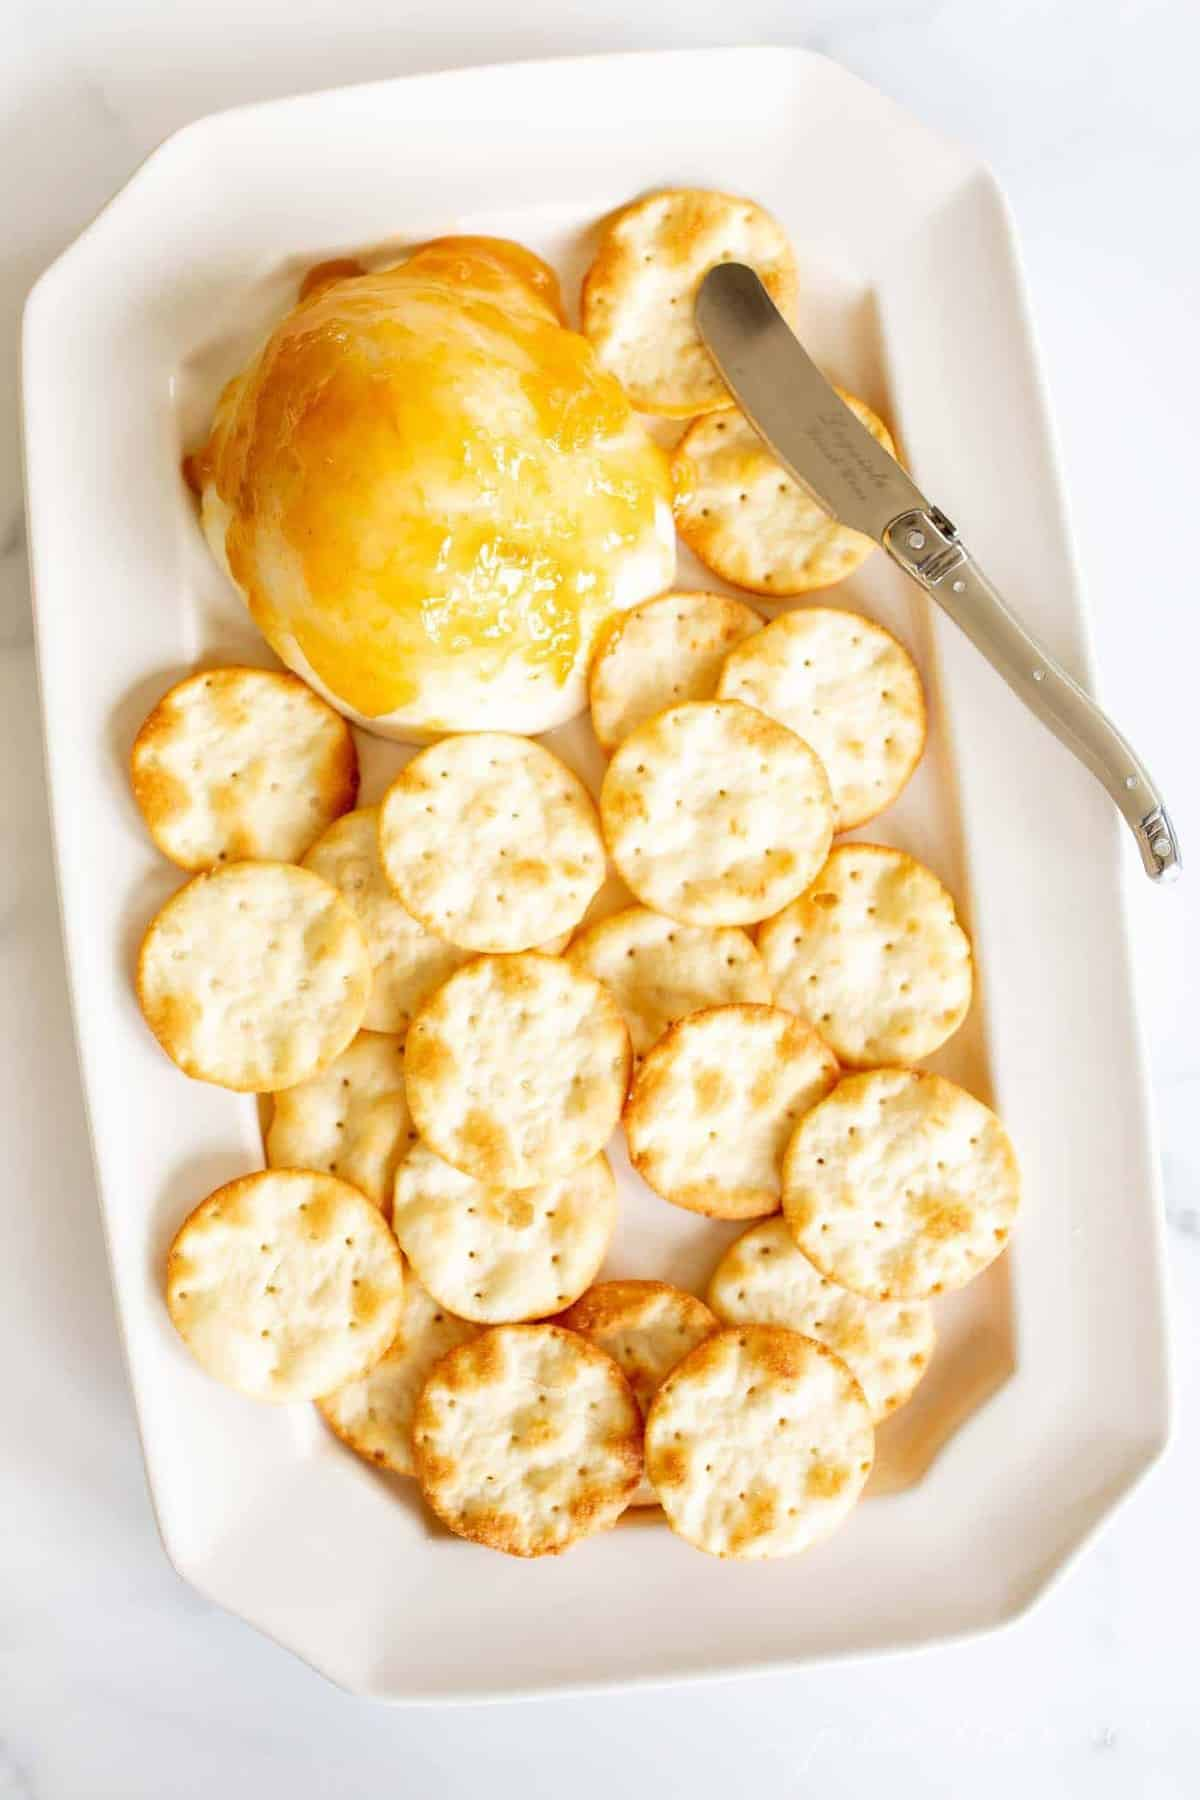 Grilled mozzarella and crackers on a  ceramic platter.